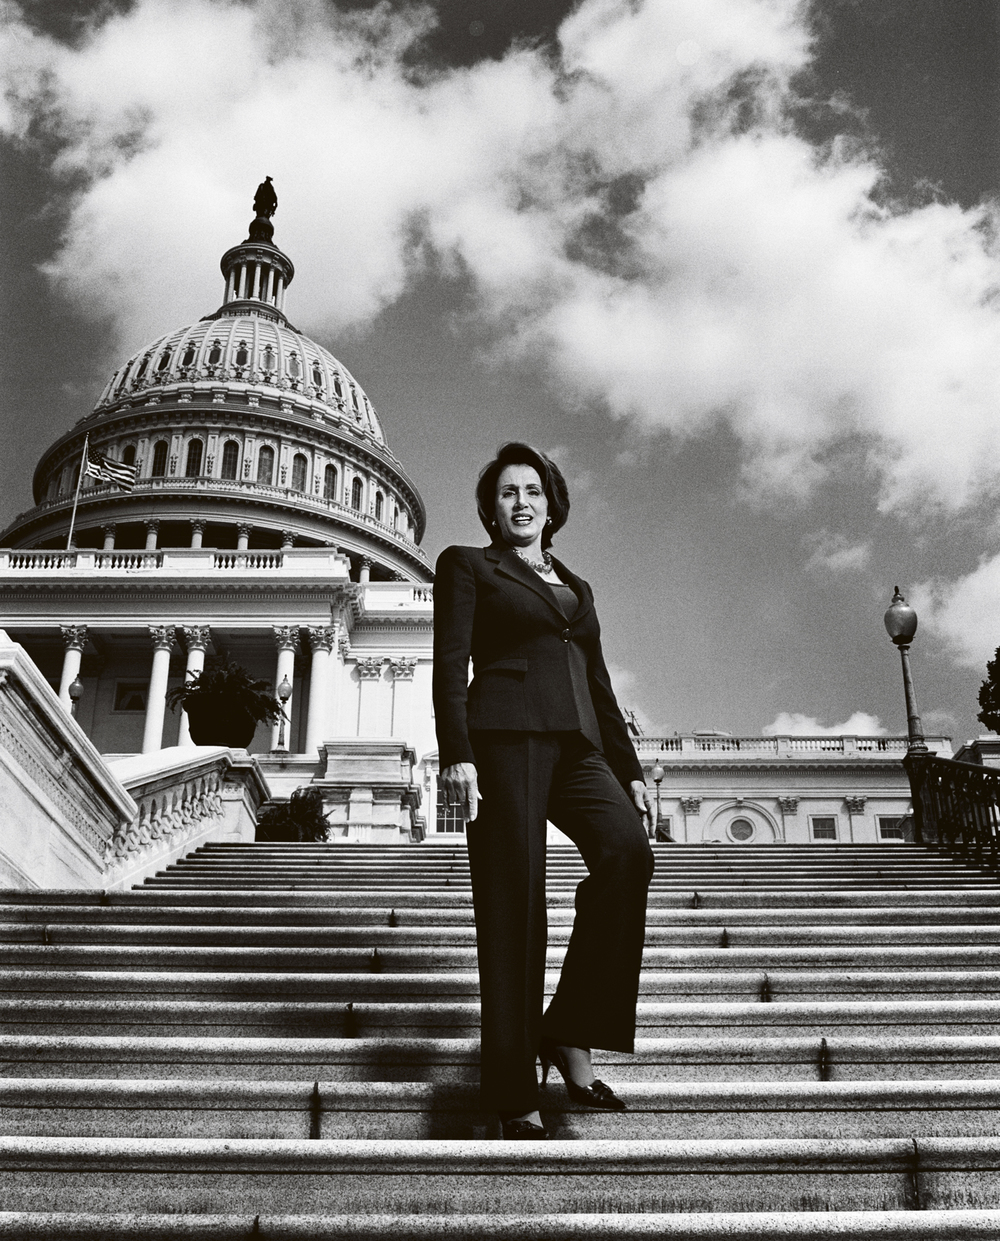 Nancy Pelosi - Washington, D.C.